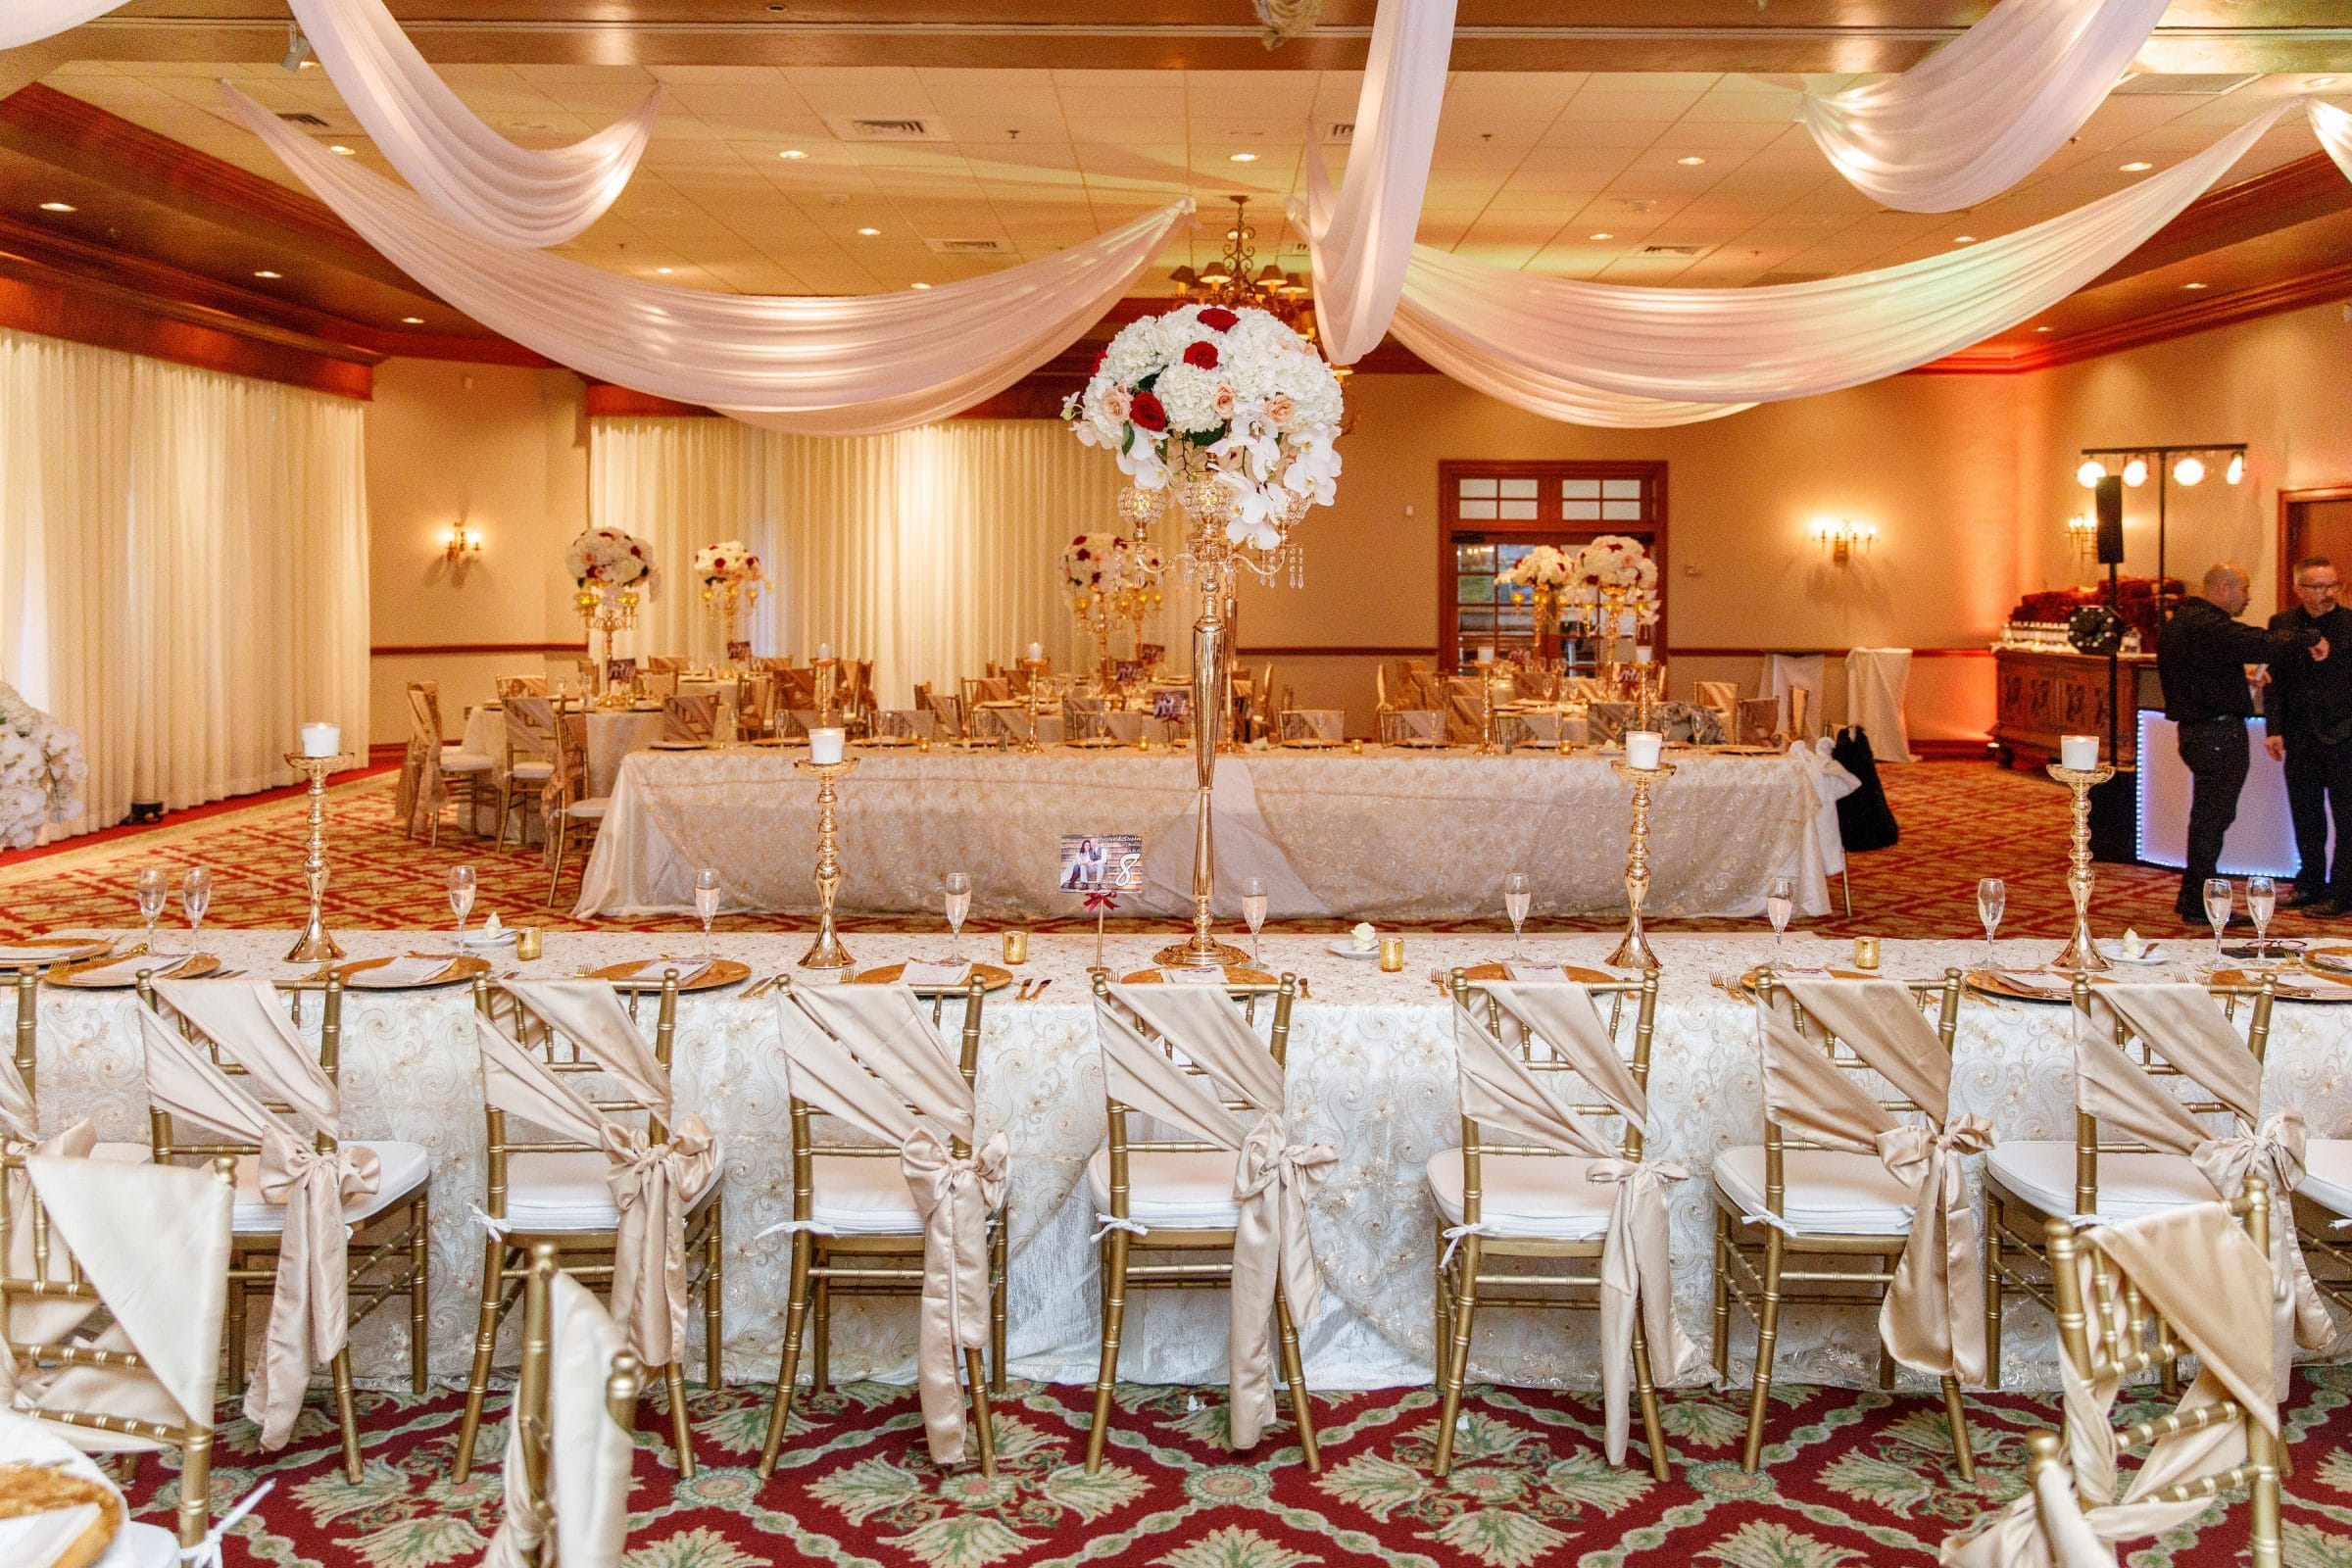 Burgundy and Gold Ballroom with Gold Chairs and White Ceiling Swag